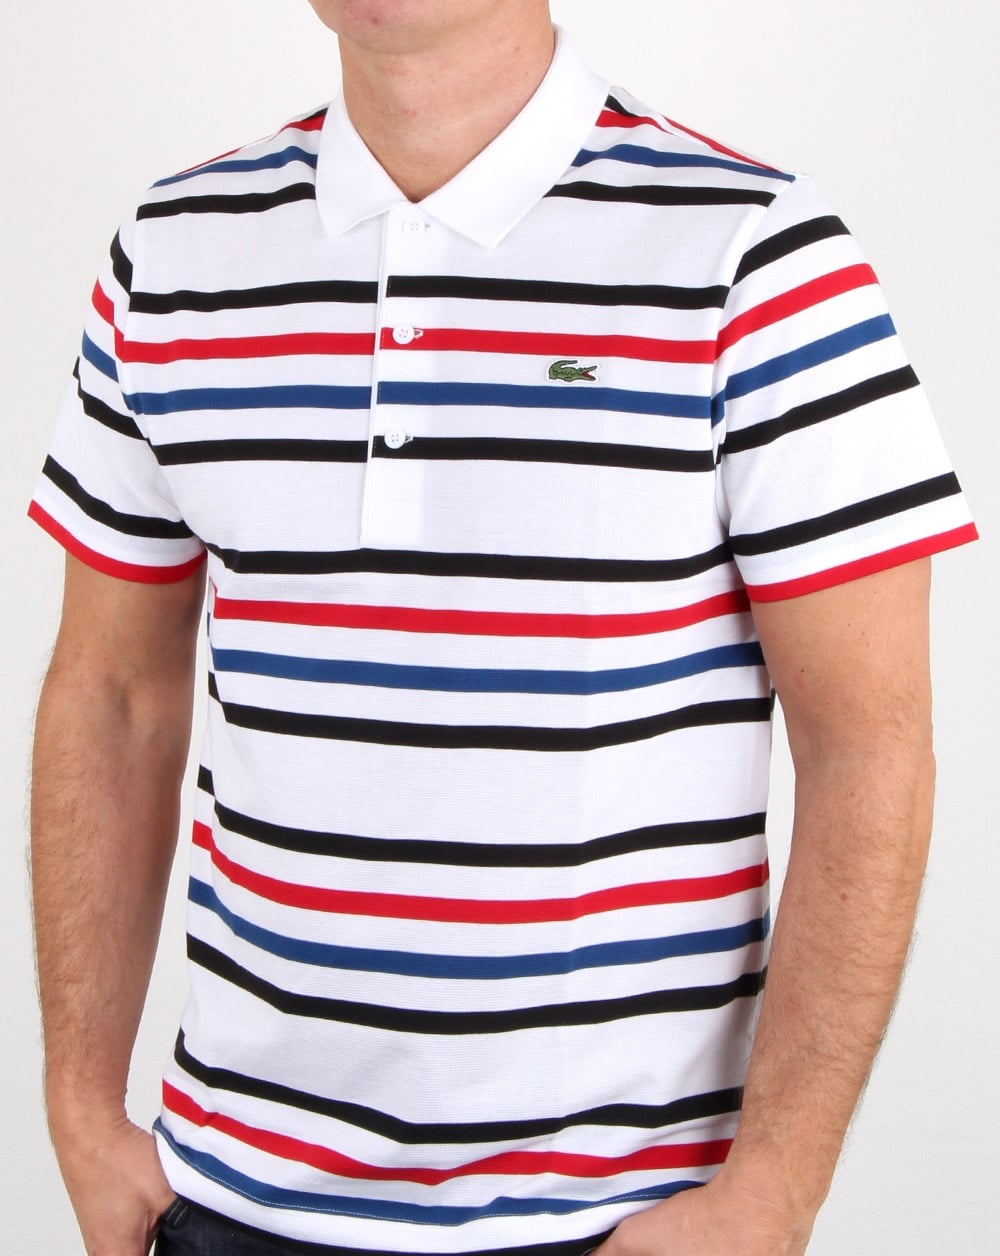 Lacoste multi stripe polo shirt white black red mens for Red white striped polo shirt